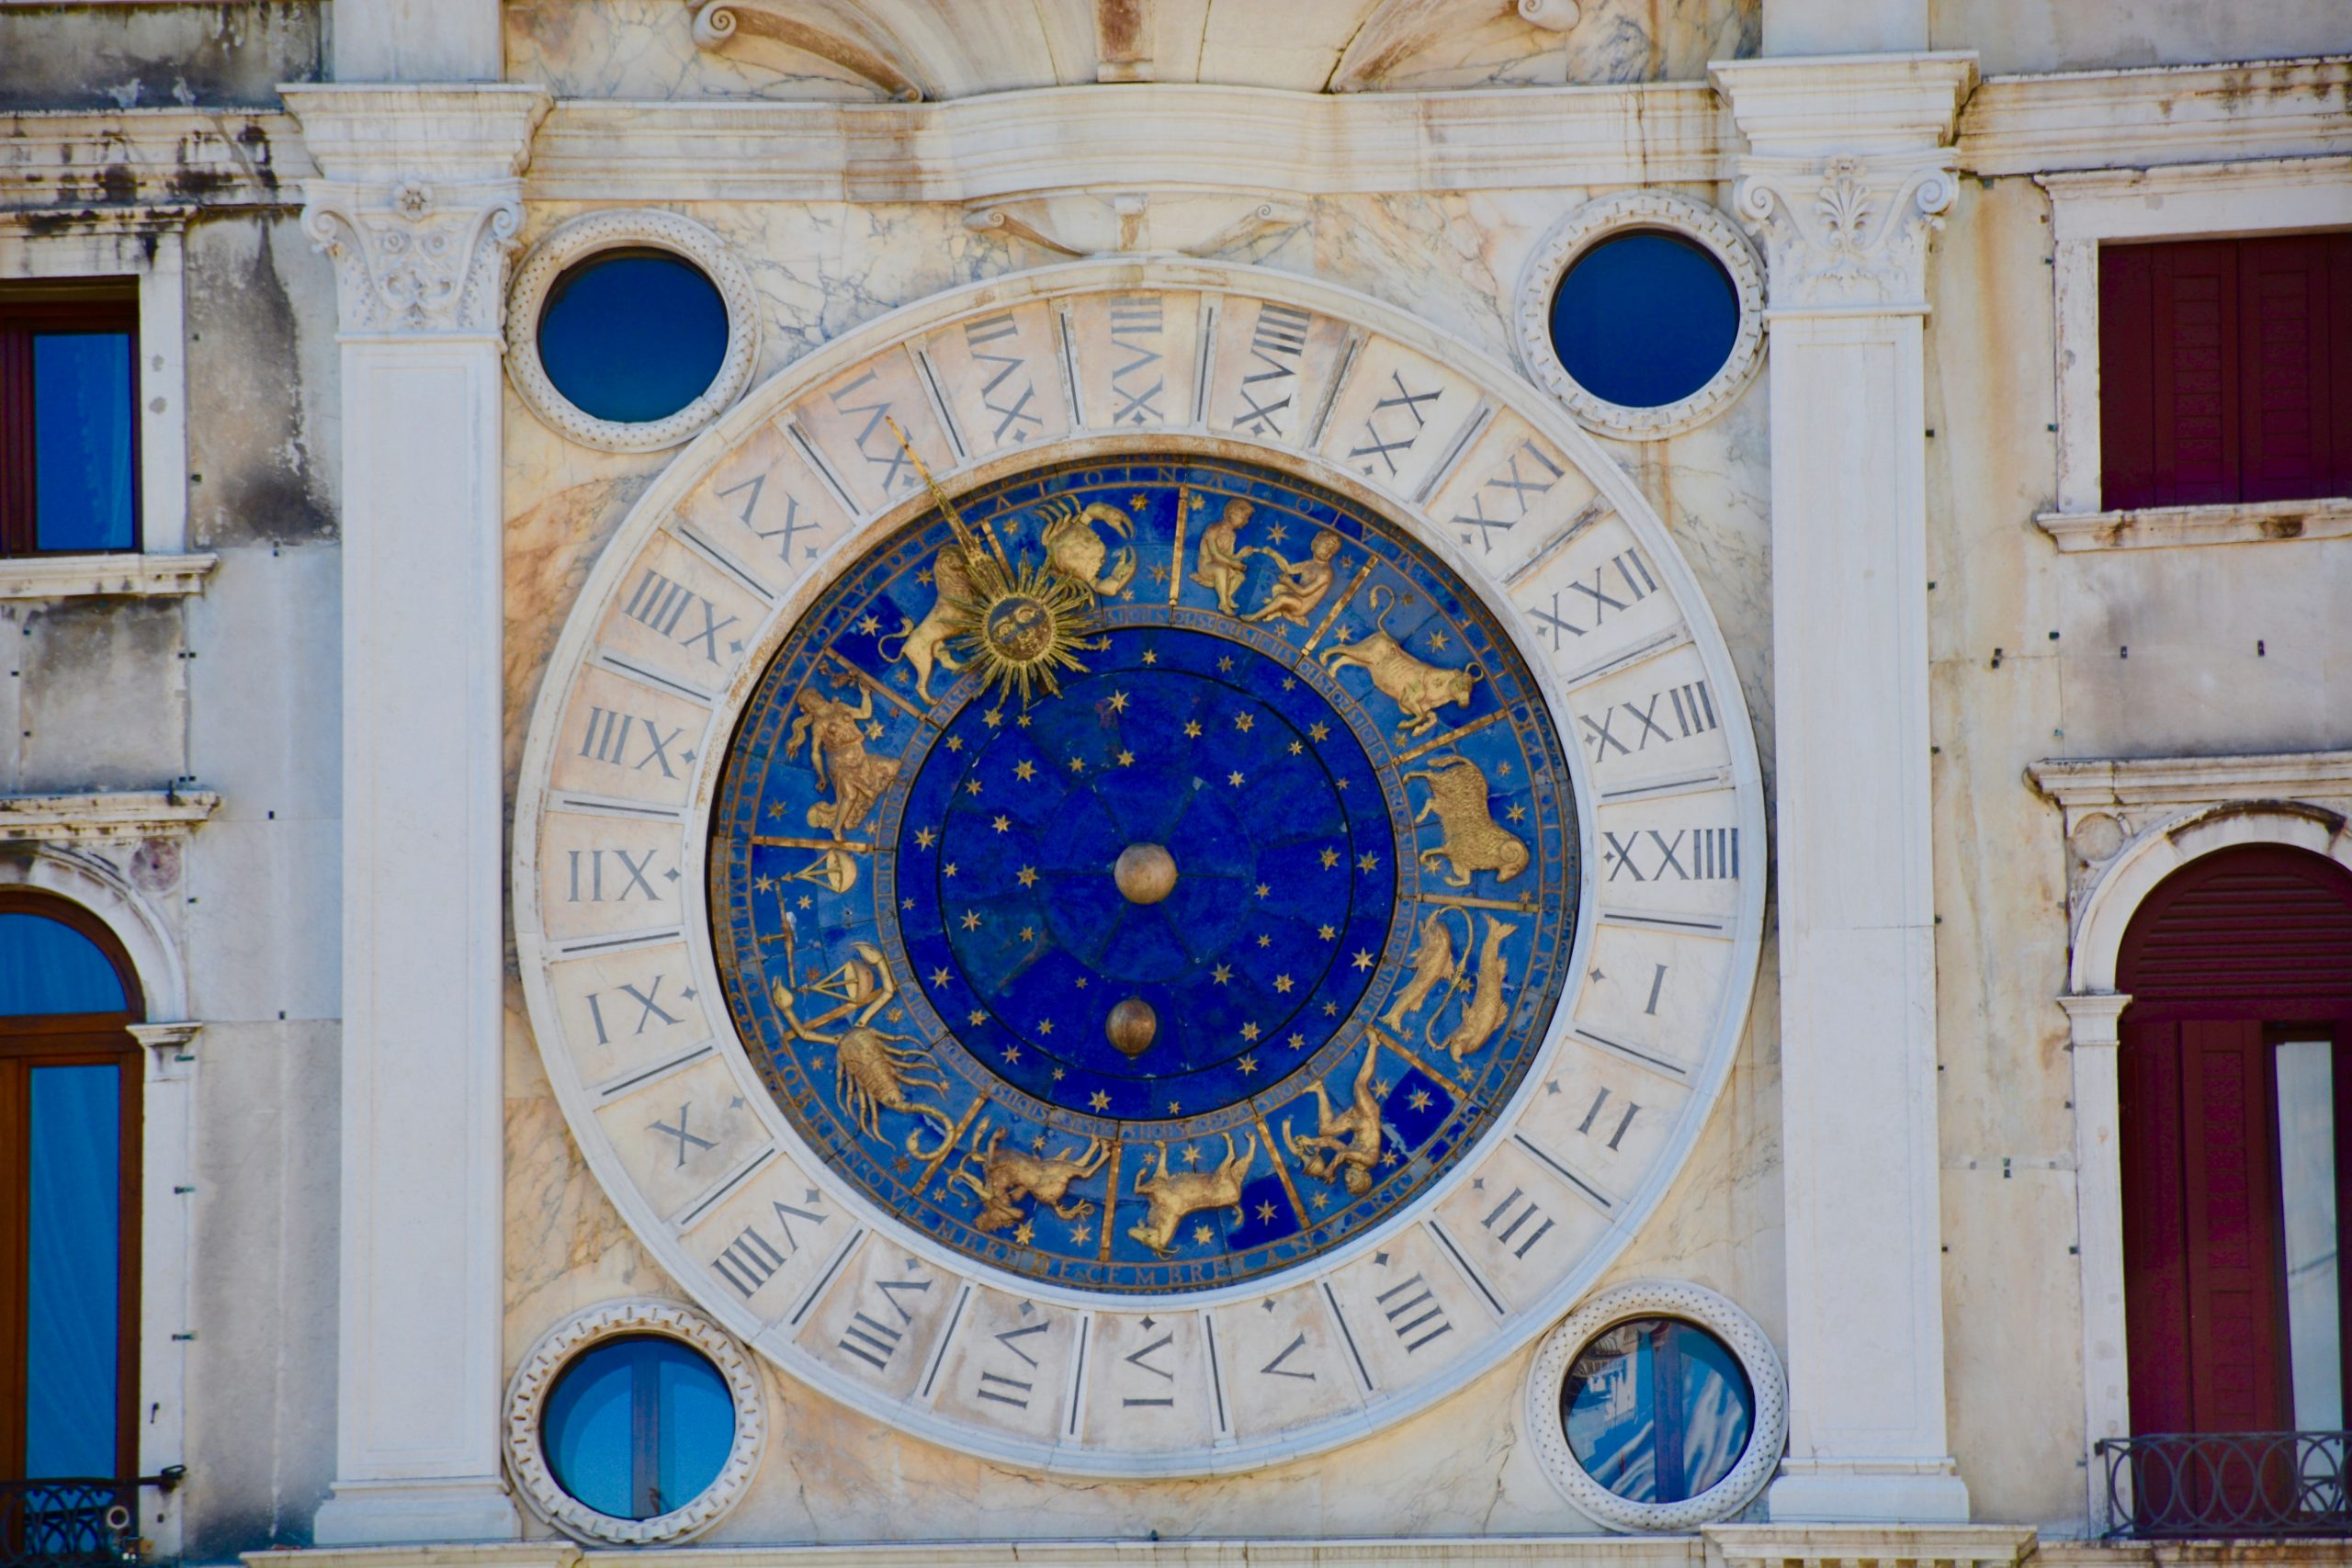 a blue and gold horoscope calendar is carved into an old beige Italian stone building